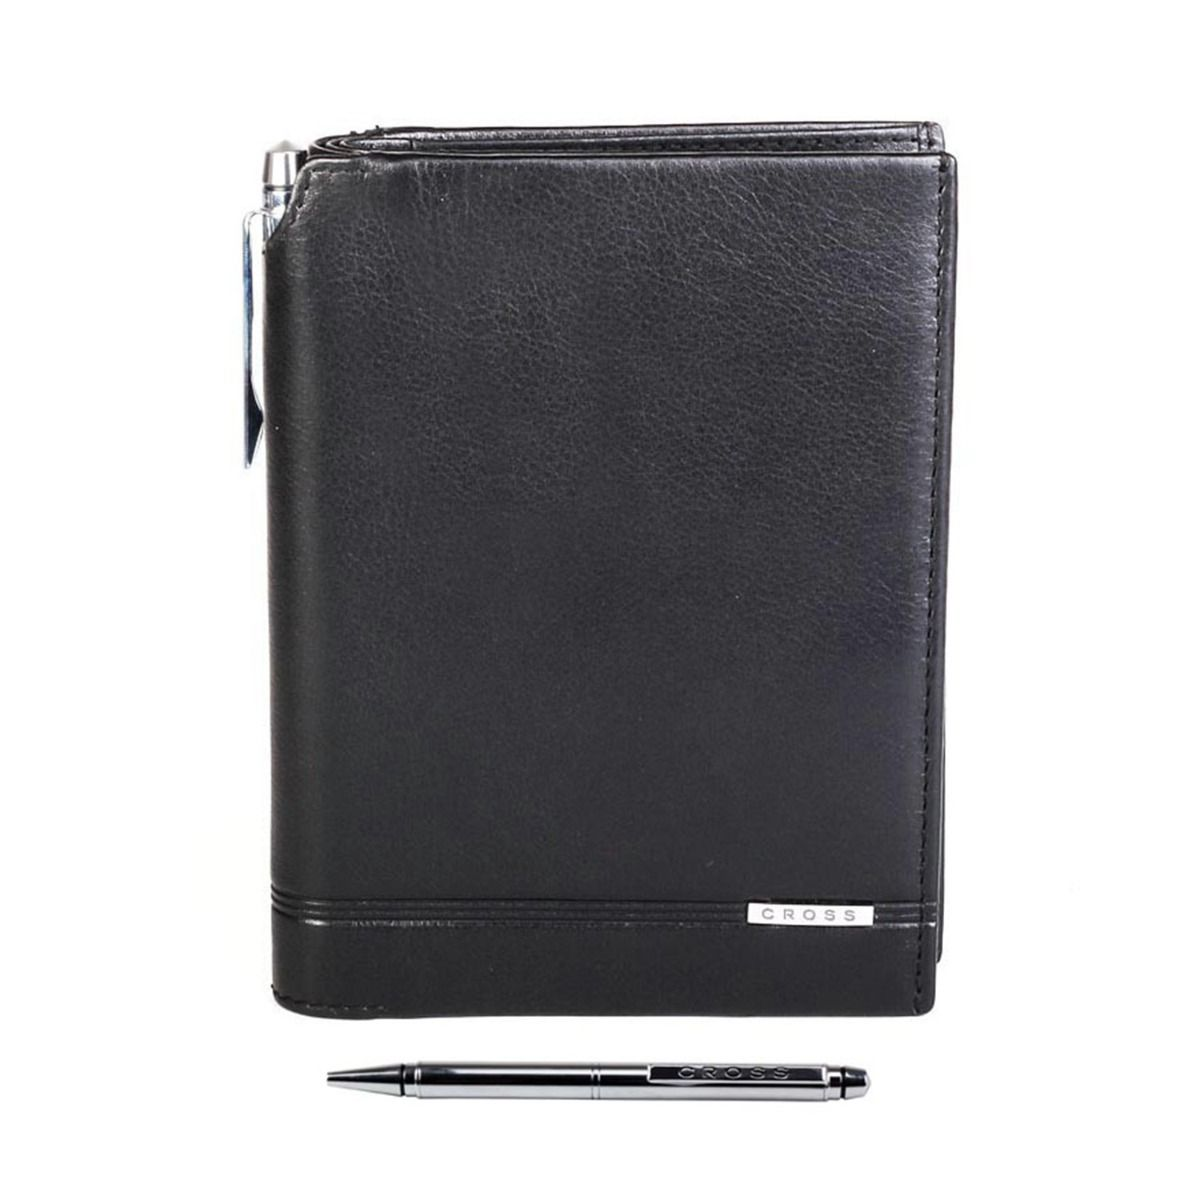 Global Passport With Pen Leather Mens Wallet - Black Price Rs. 2999